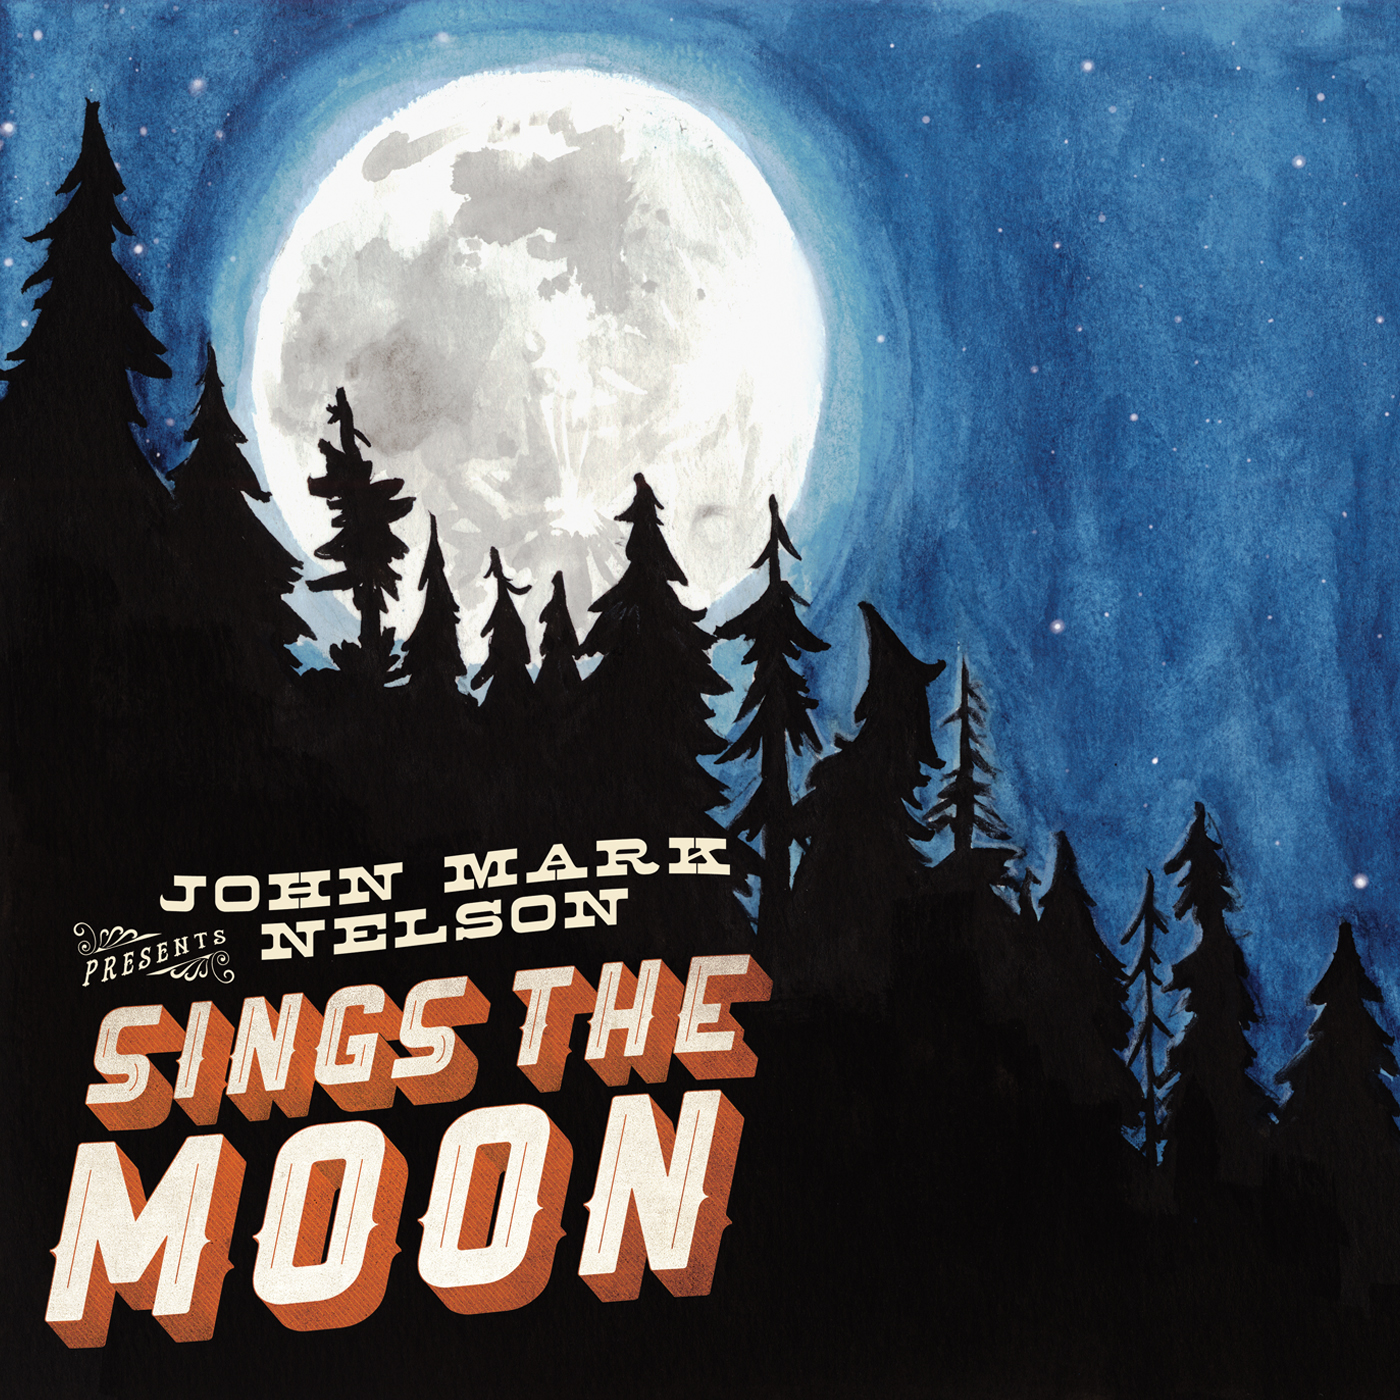 SINGS the moon - 2014, artist, co-producer